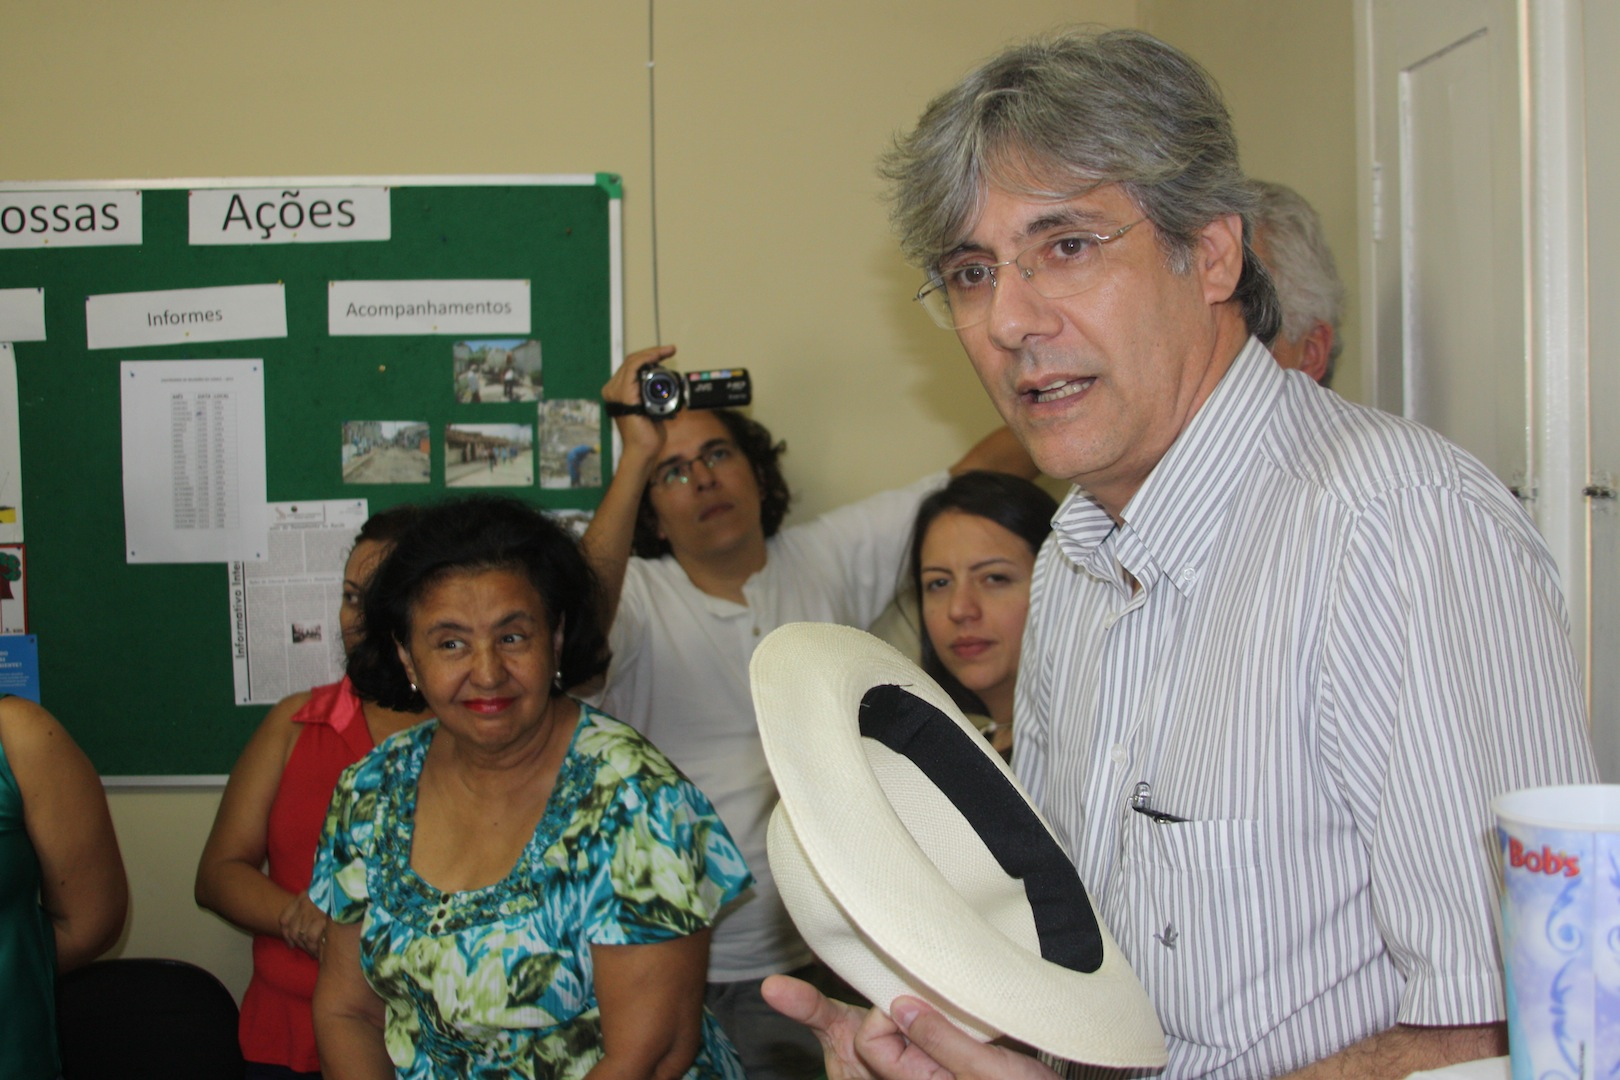 Visit to Mustardinha 2, site of the community's association